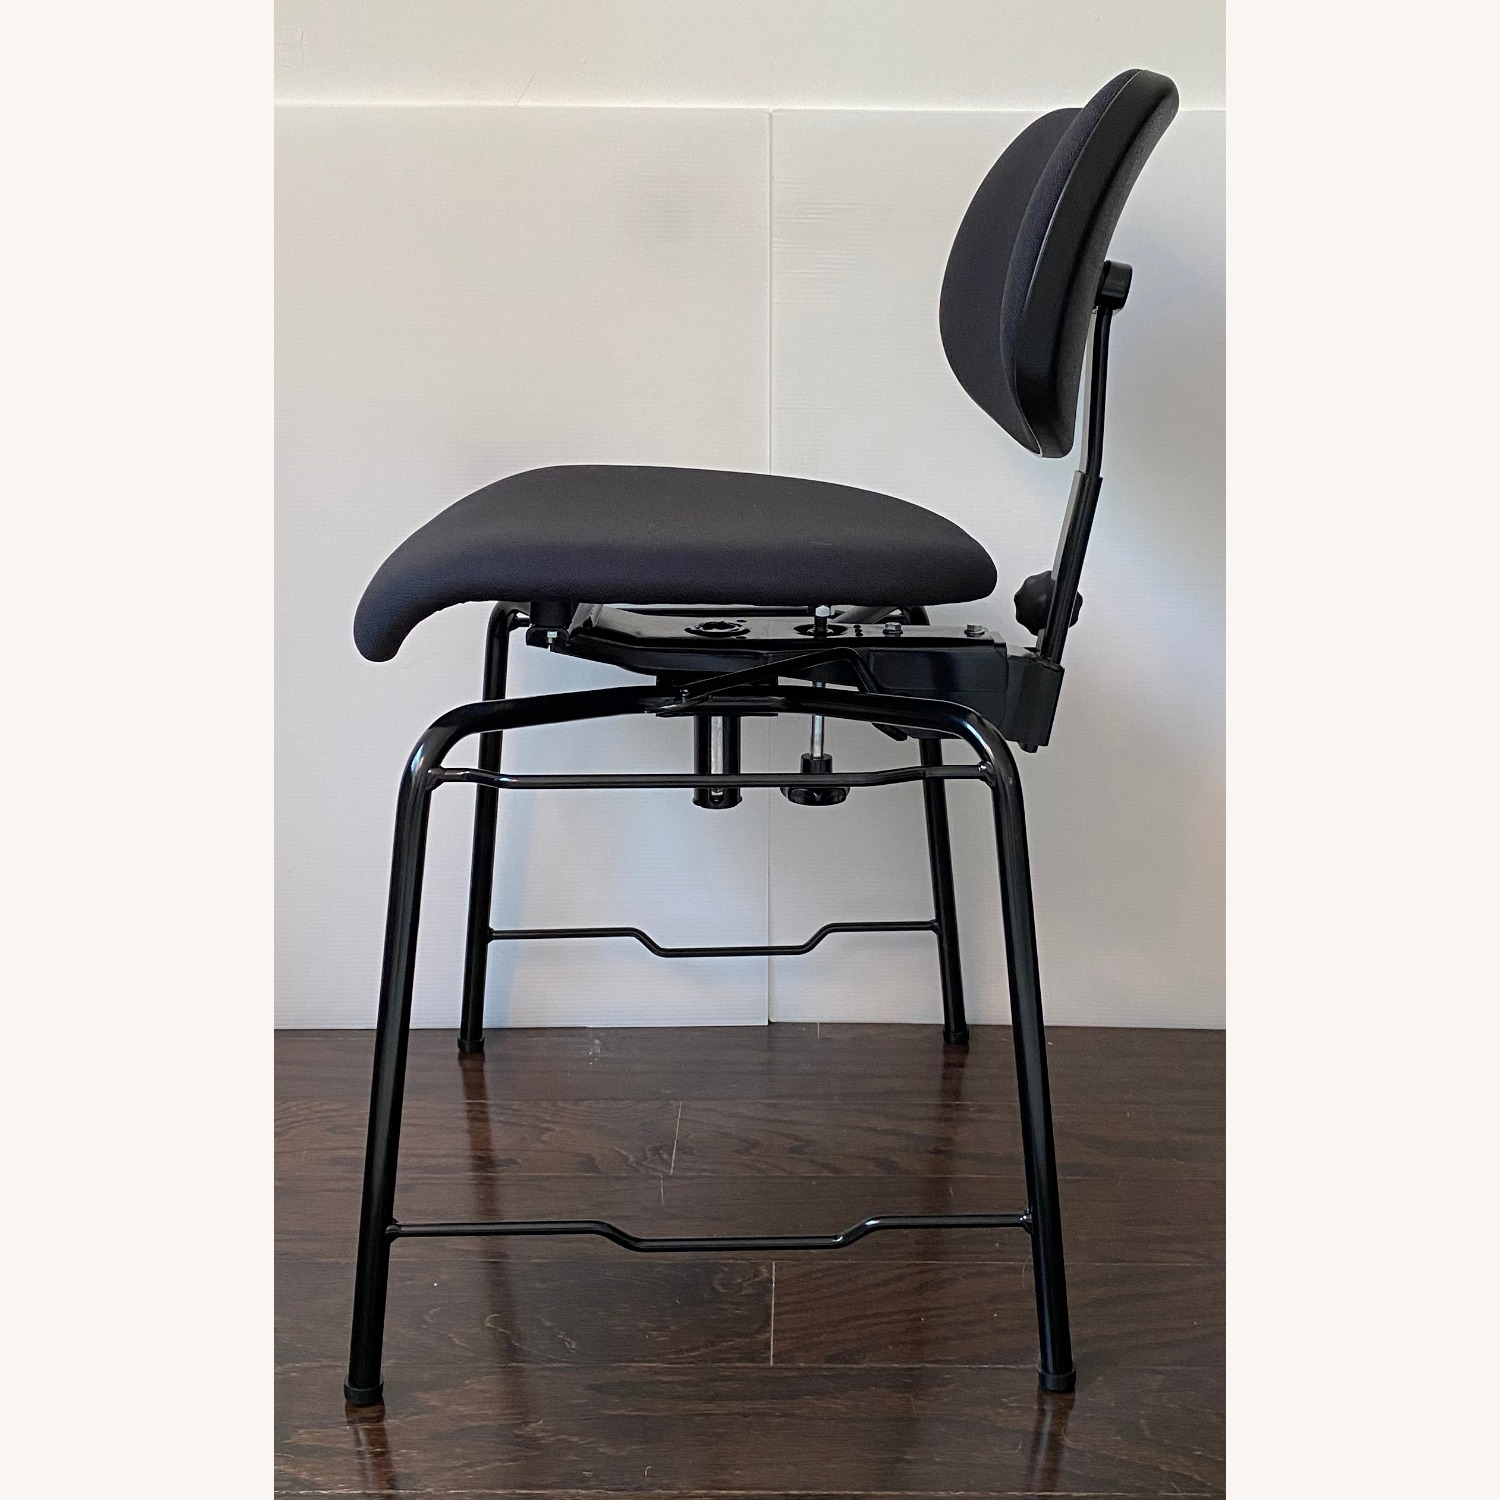 "Wilde + Spieth ""Orchestra"" Chair Black - image-18"